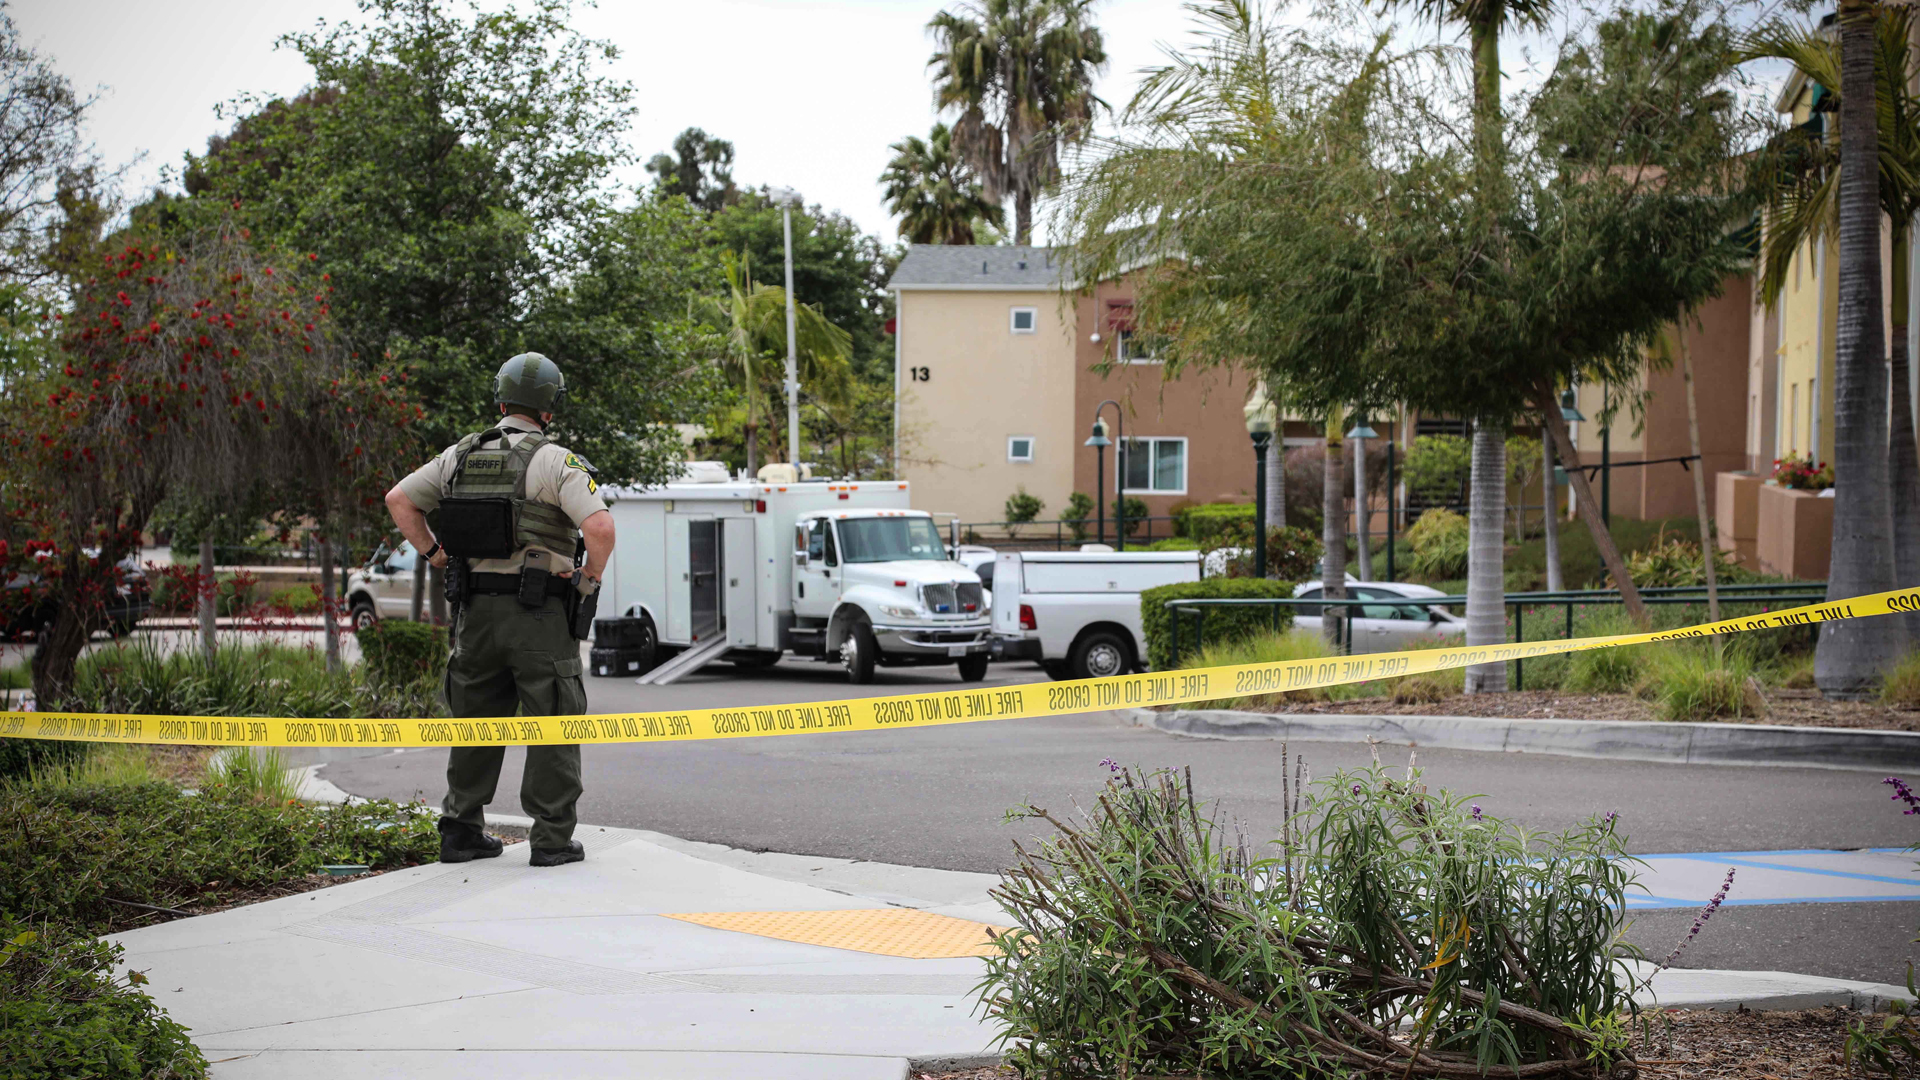 Authorities work at the scene of a shootout between police and a suspect in Santa Barbara on May 7, 2019. The suspect was ultimately found dead. (Credit: Santa Barbara County Sheriff's Office)